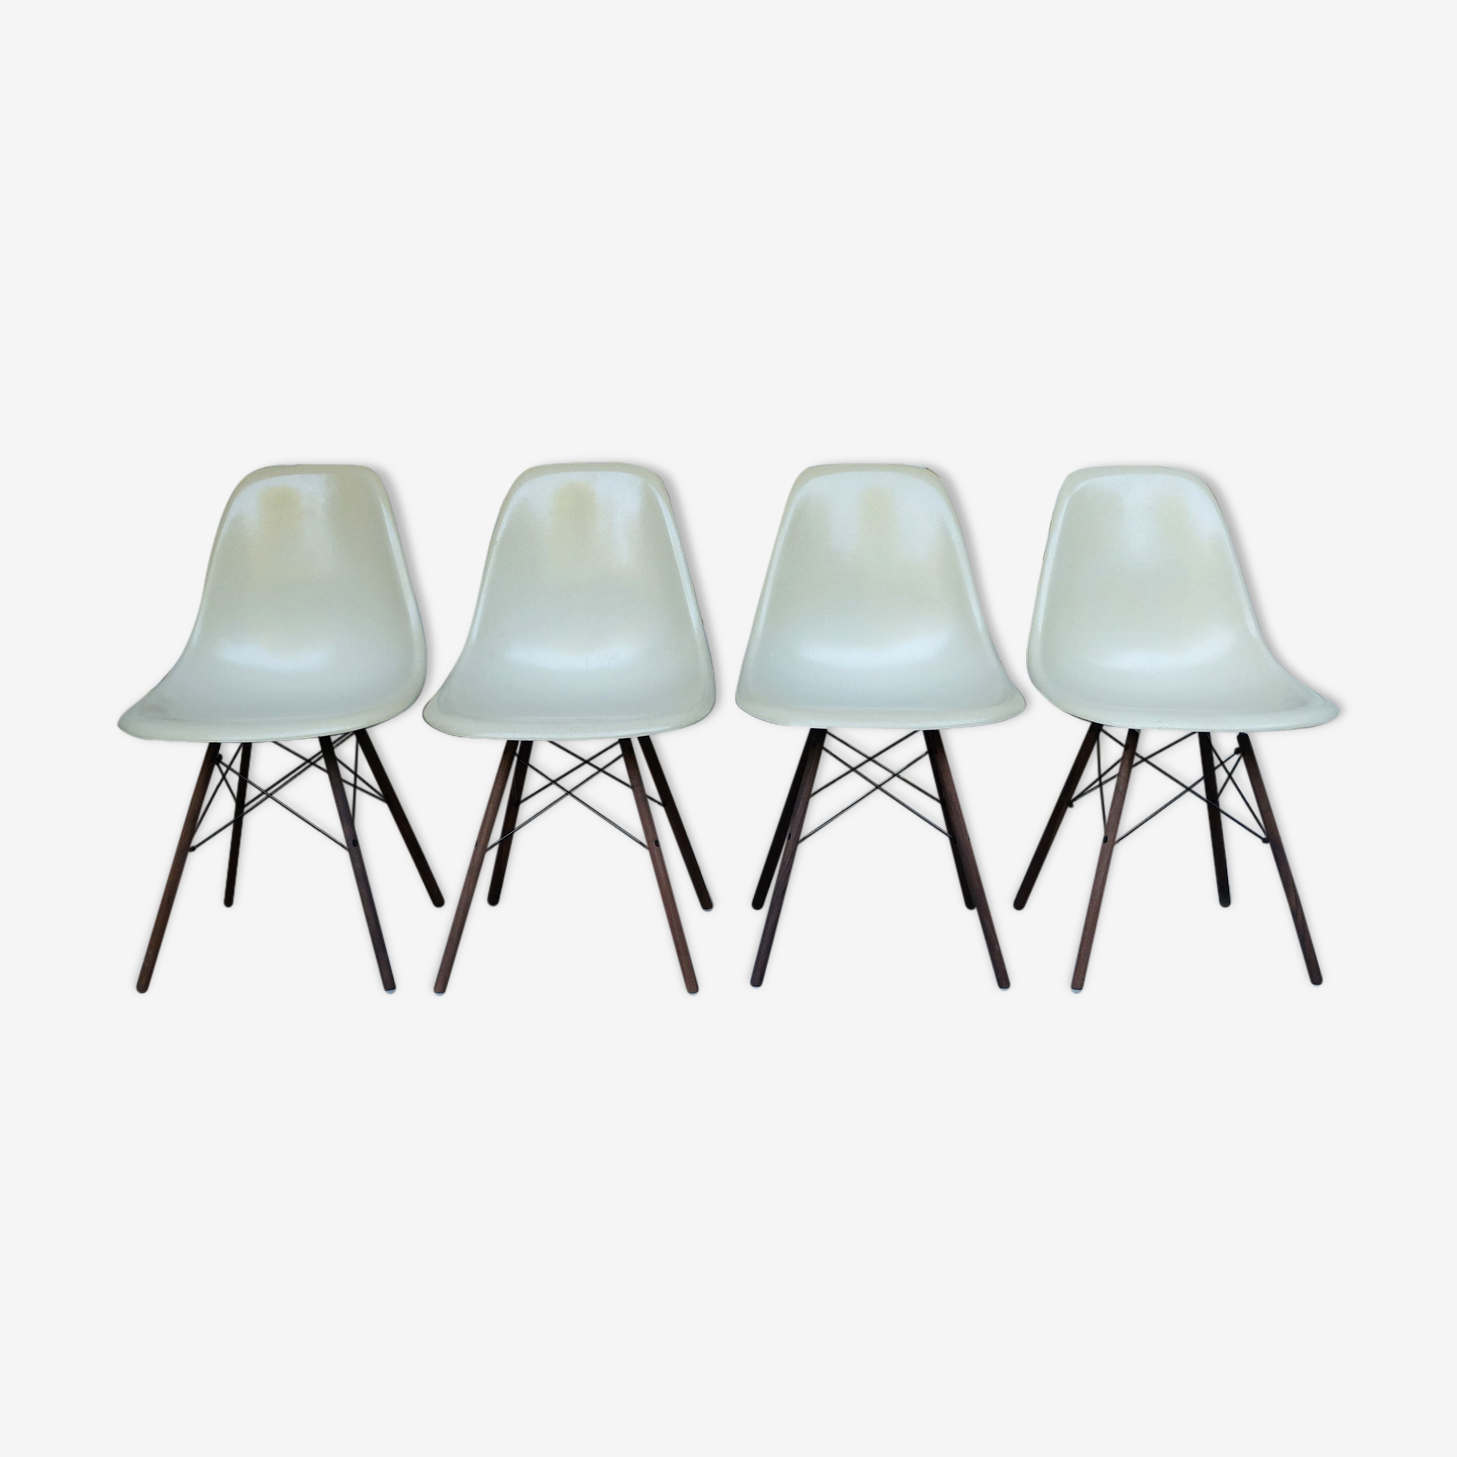 DSW Eames chairs off-white dowel Herman Miller